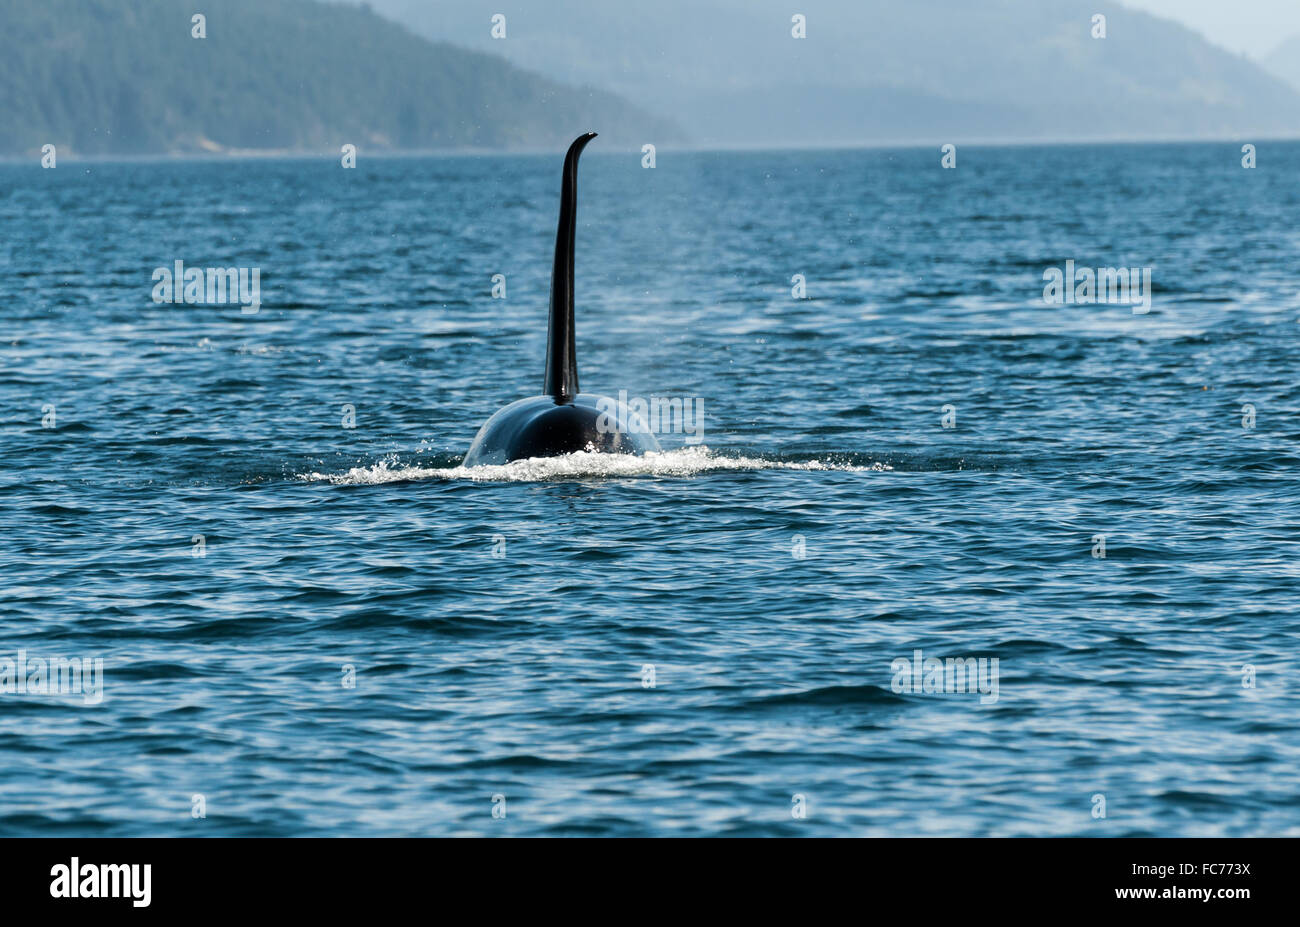 Canada - Orcas close to Vancouver Island - Stock Image